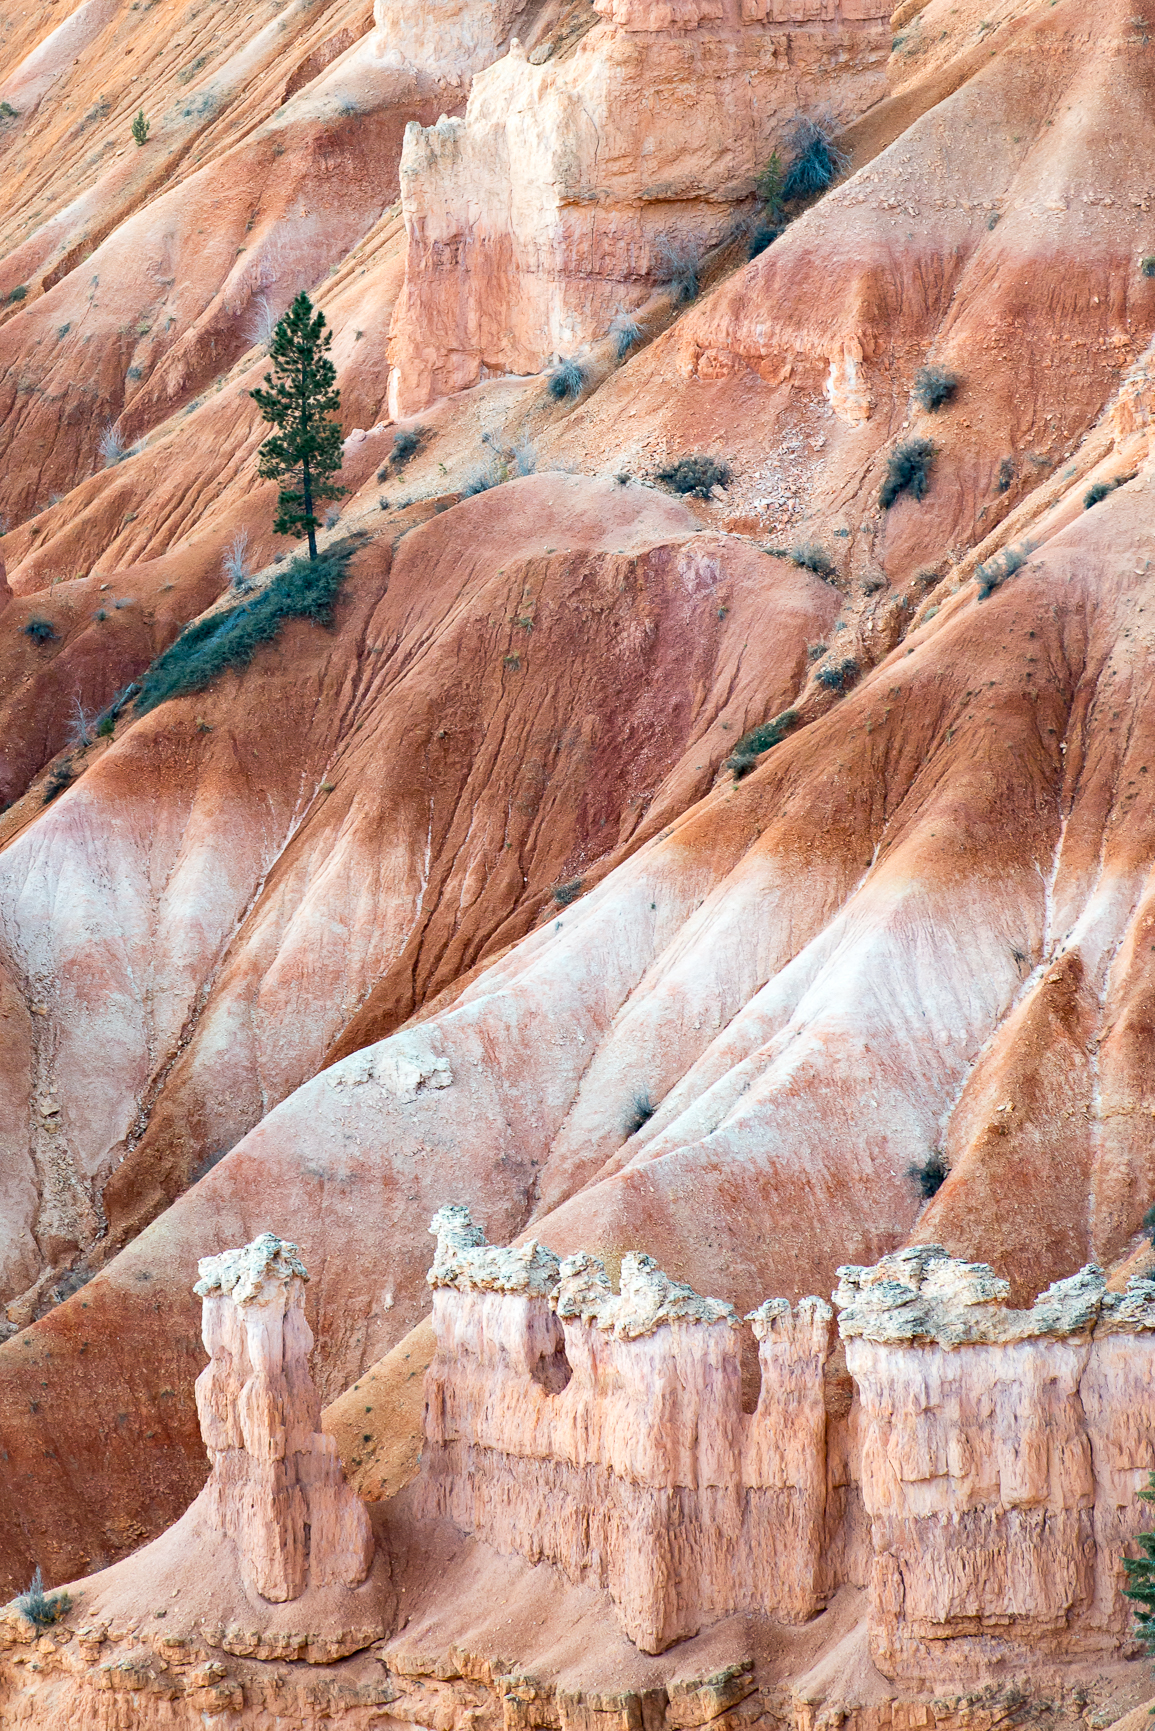 Detailed Photo of Bryce National Park Hoodoos and Tree